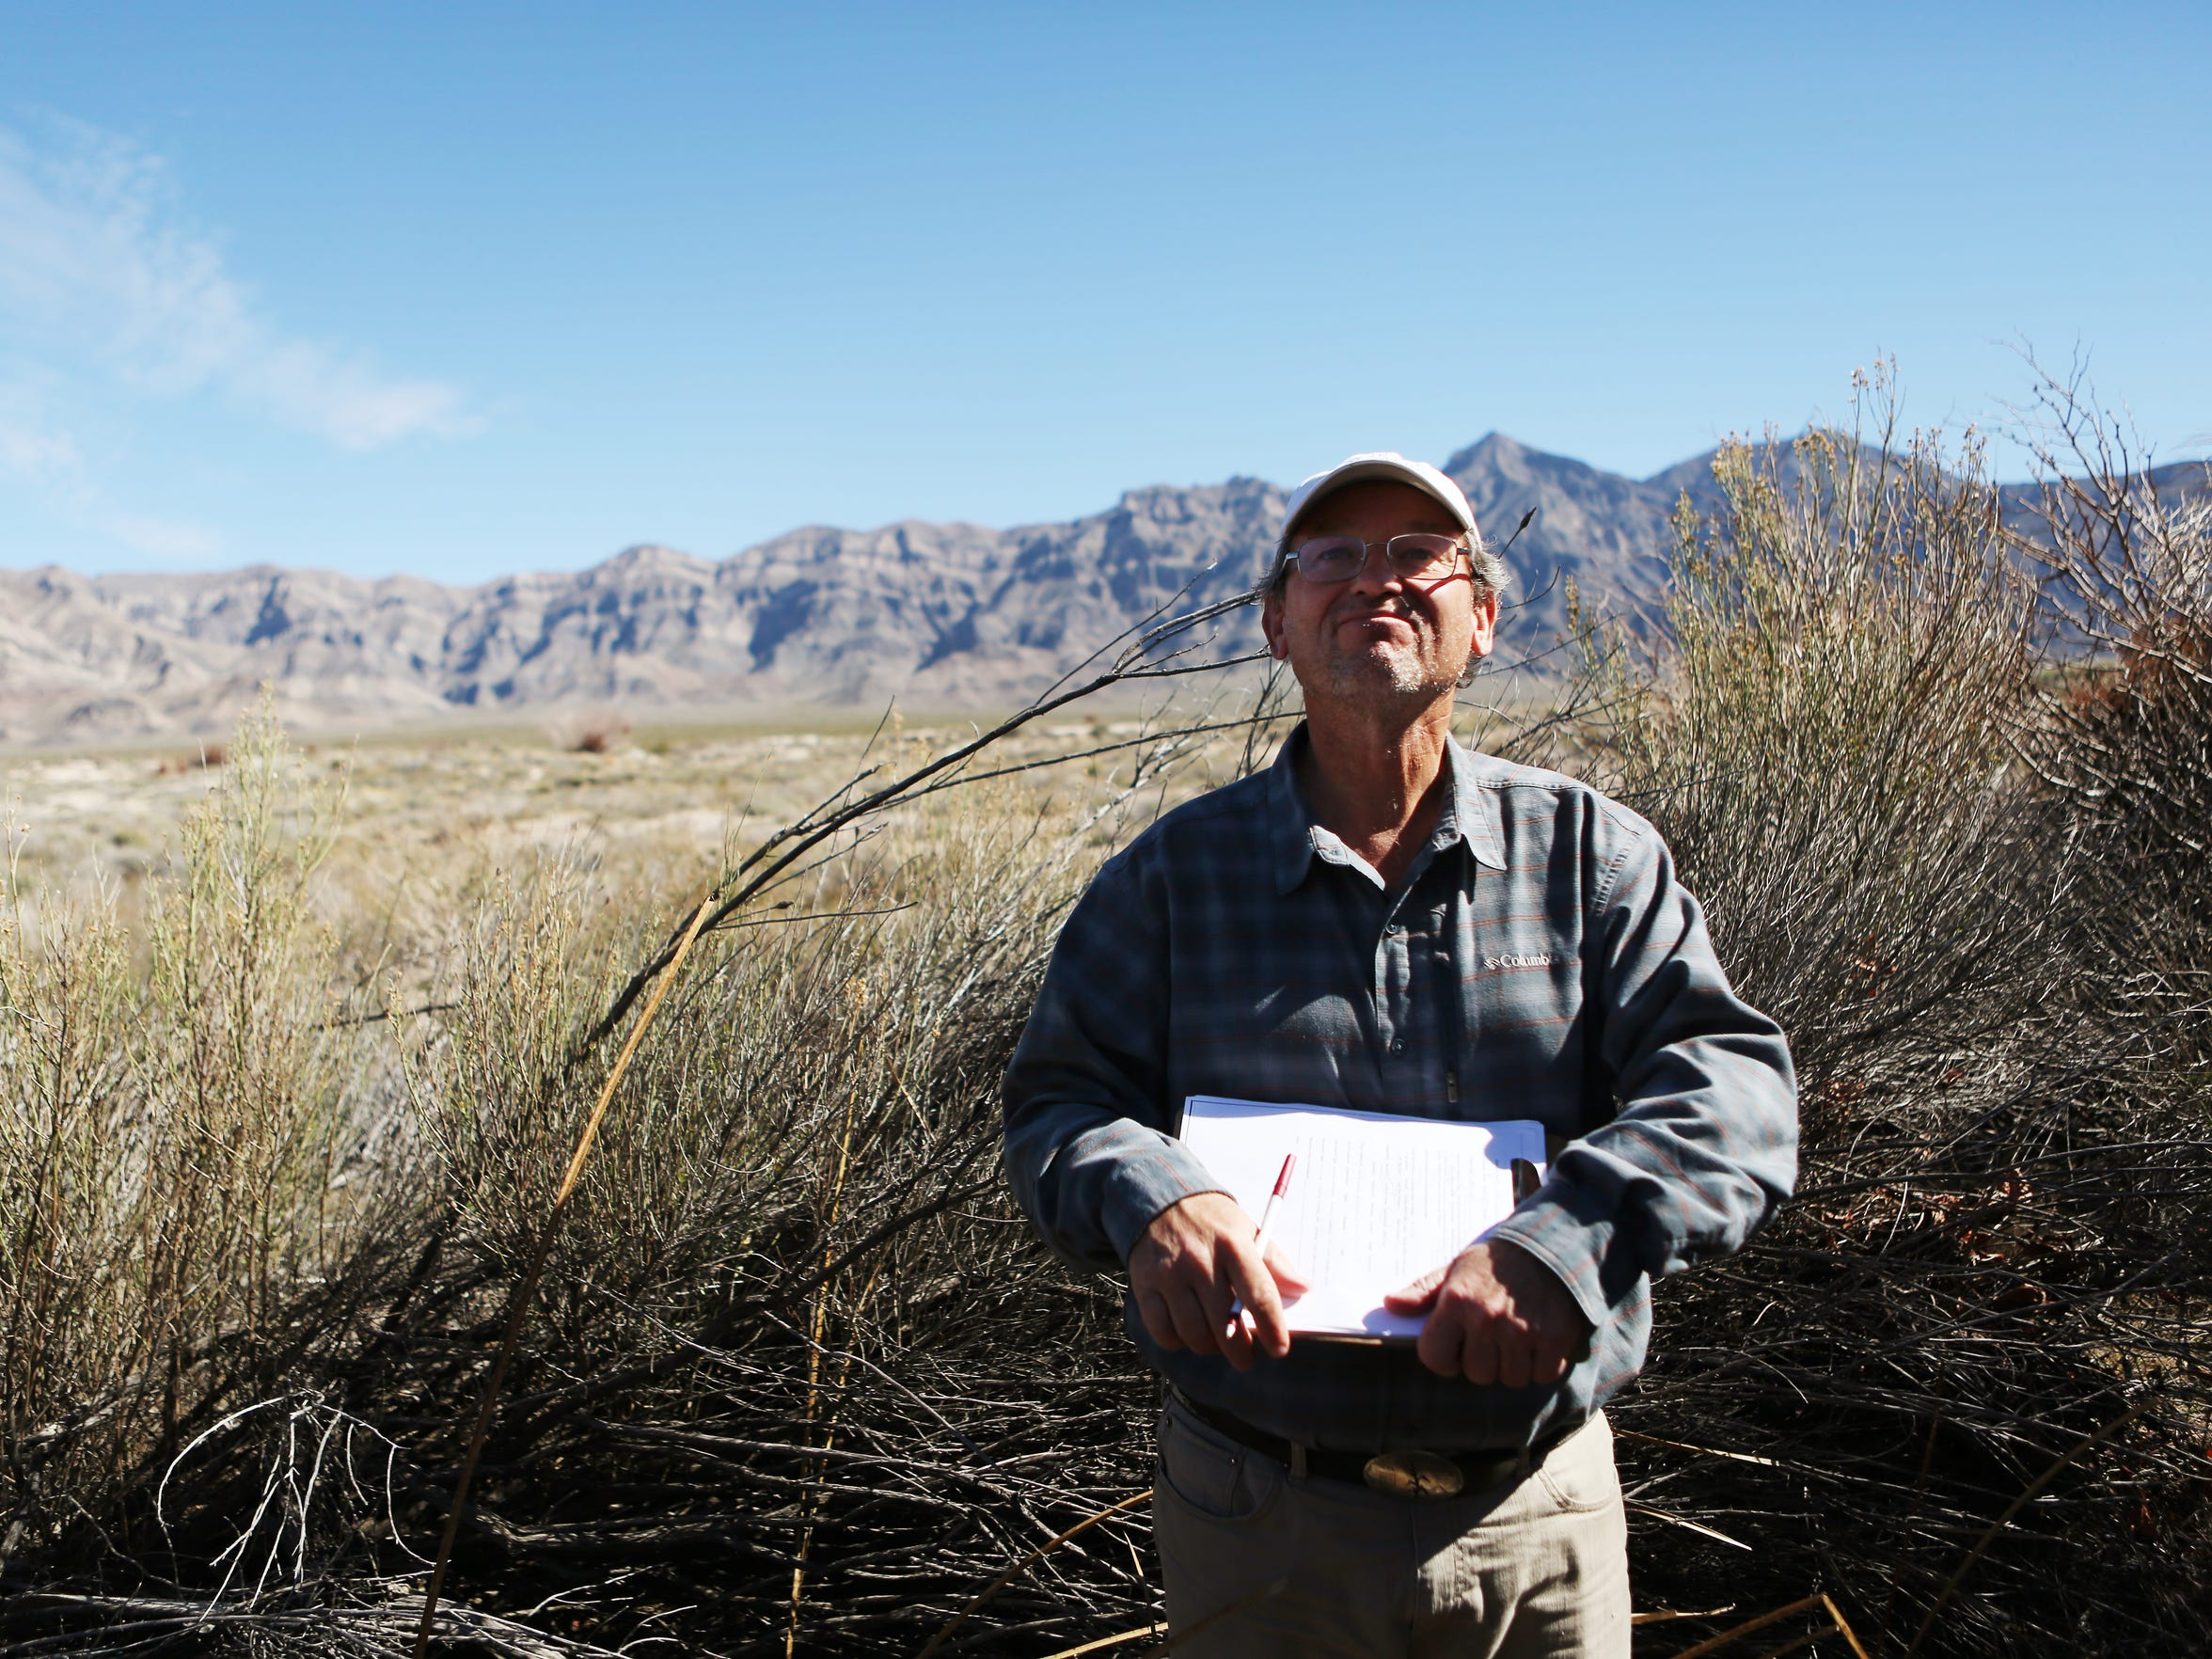 Andy Zdon looks over the vegetation at a spring in the Mojave Desert. He has surveyed more than 300 springs in a desert-wide study.